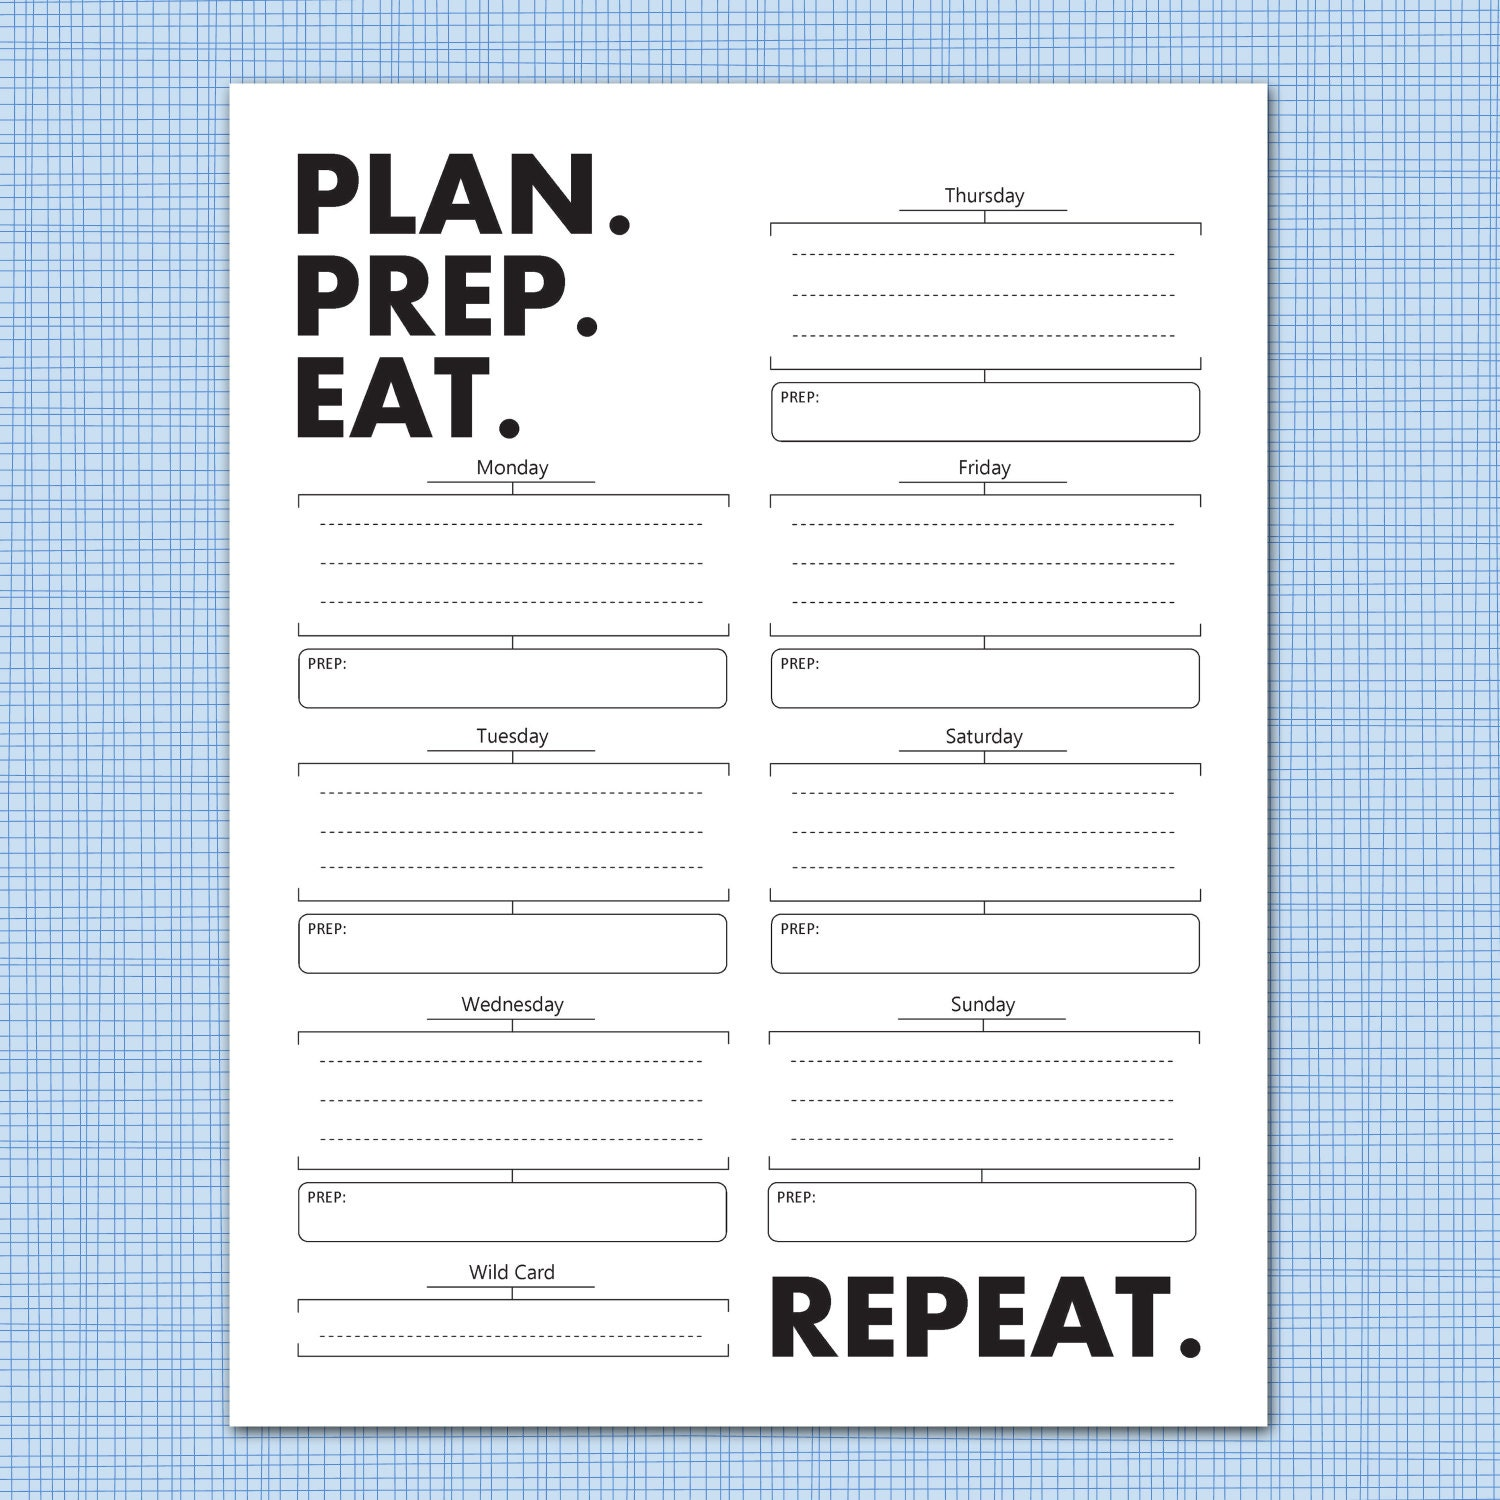 weekly meal planner download plan prep eat by microdesign. Black Bedroom Furniture Sets. Home Design Ideas